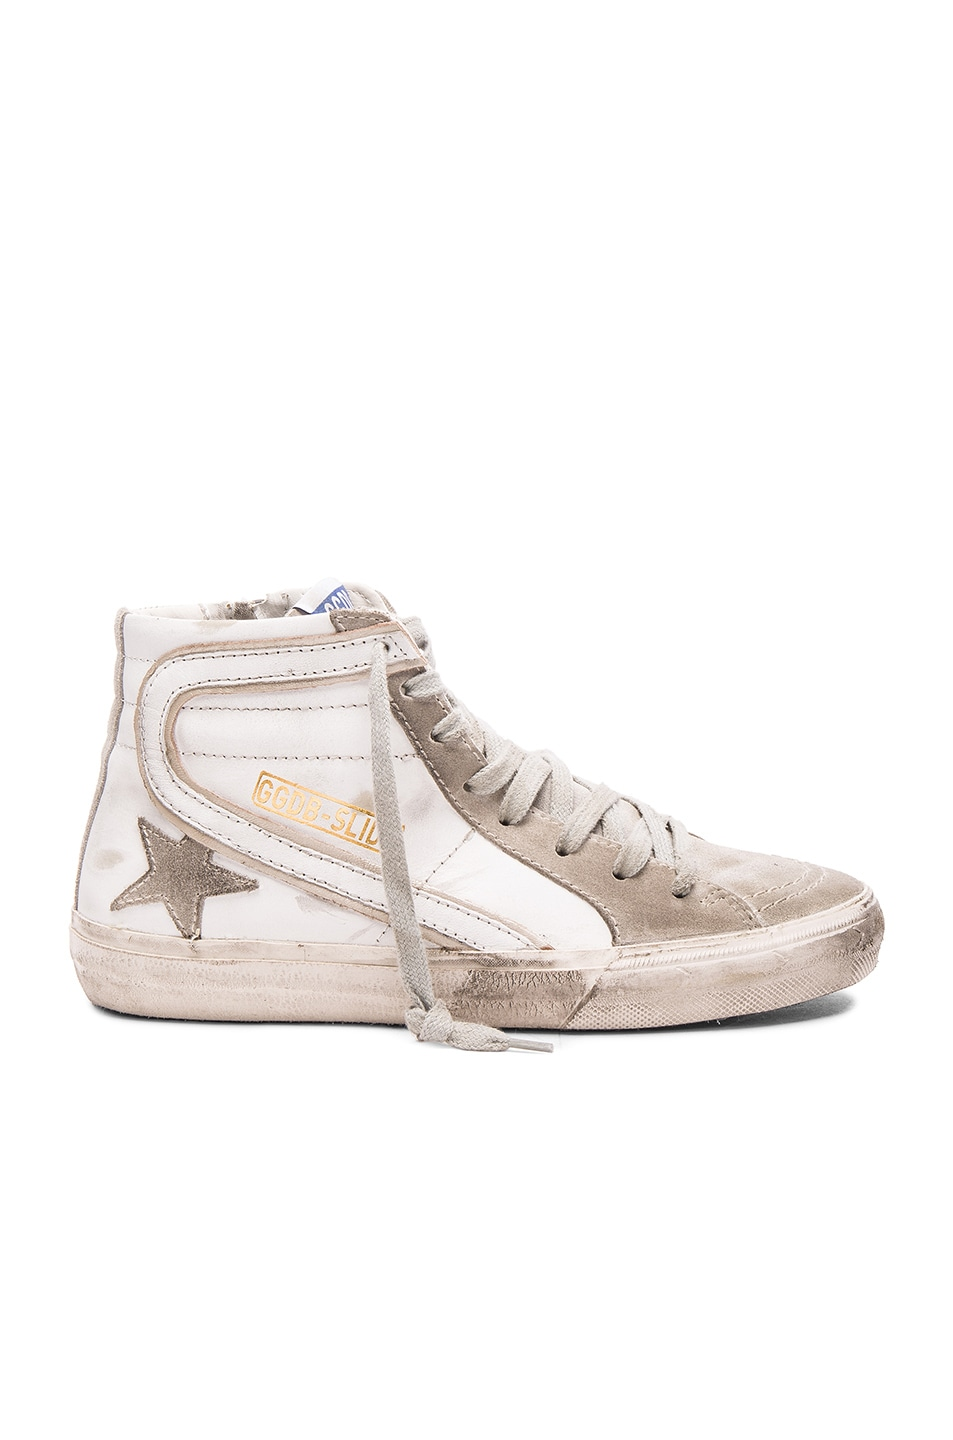 Image 1 of Golden Goose Slide Sneakers in White Leather